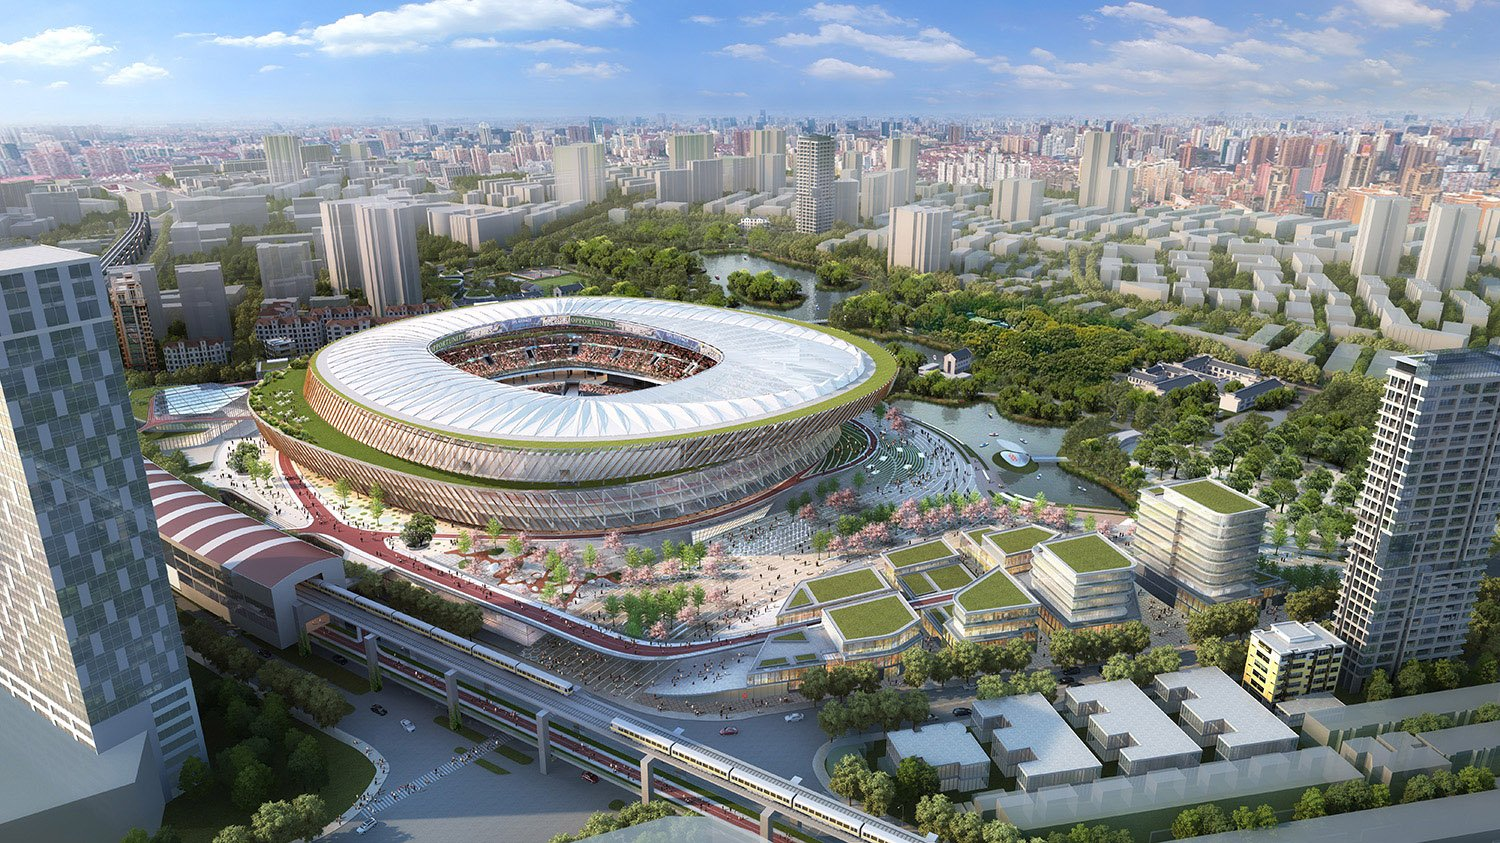 The stadium is located at the intersection of two of Shanghai's most important cultural and historical districts, with excellent accessibility and visibility benefiting from the three existing metro lines. SASAKI